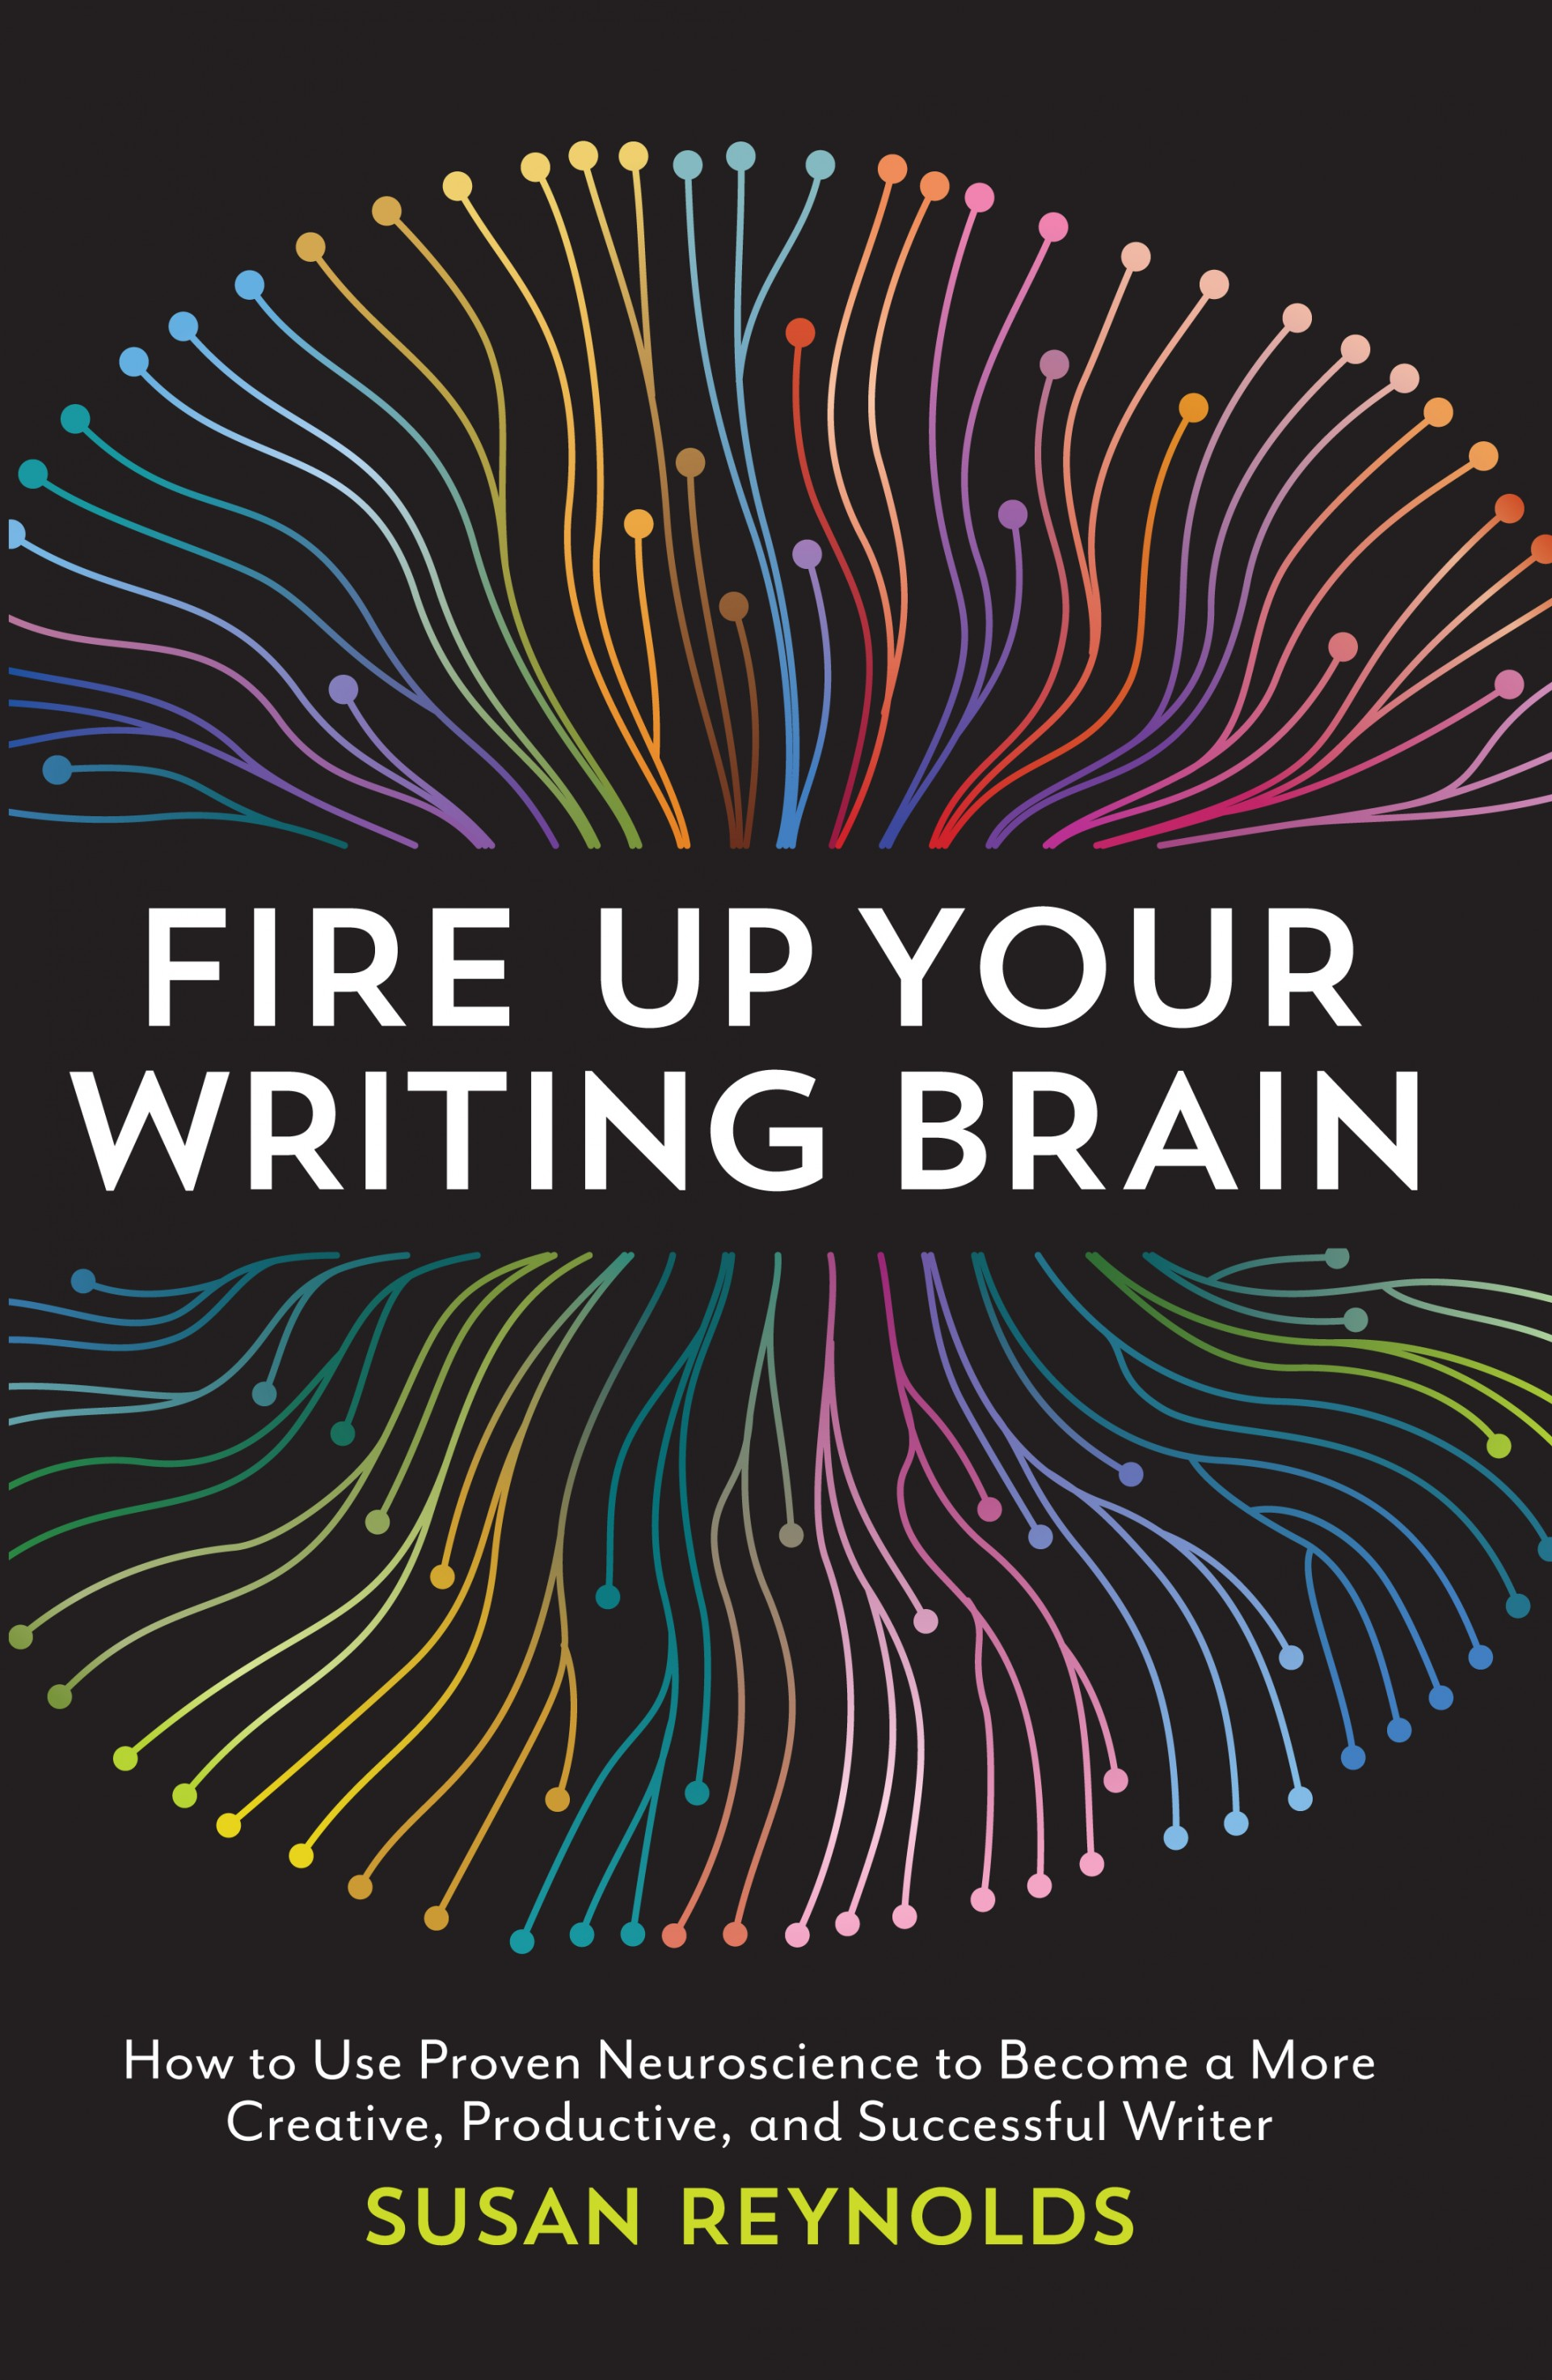 023 Fire Up Your Writing Brain Essay Example Outstanding Brainstorming Techniques Topics College 1920